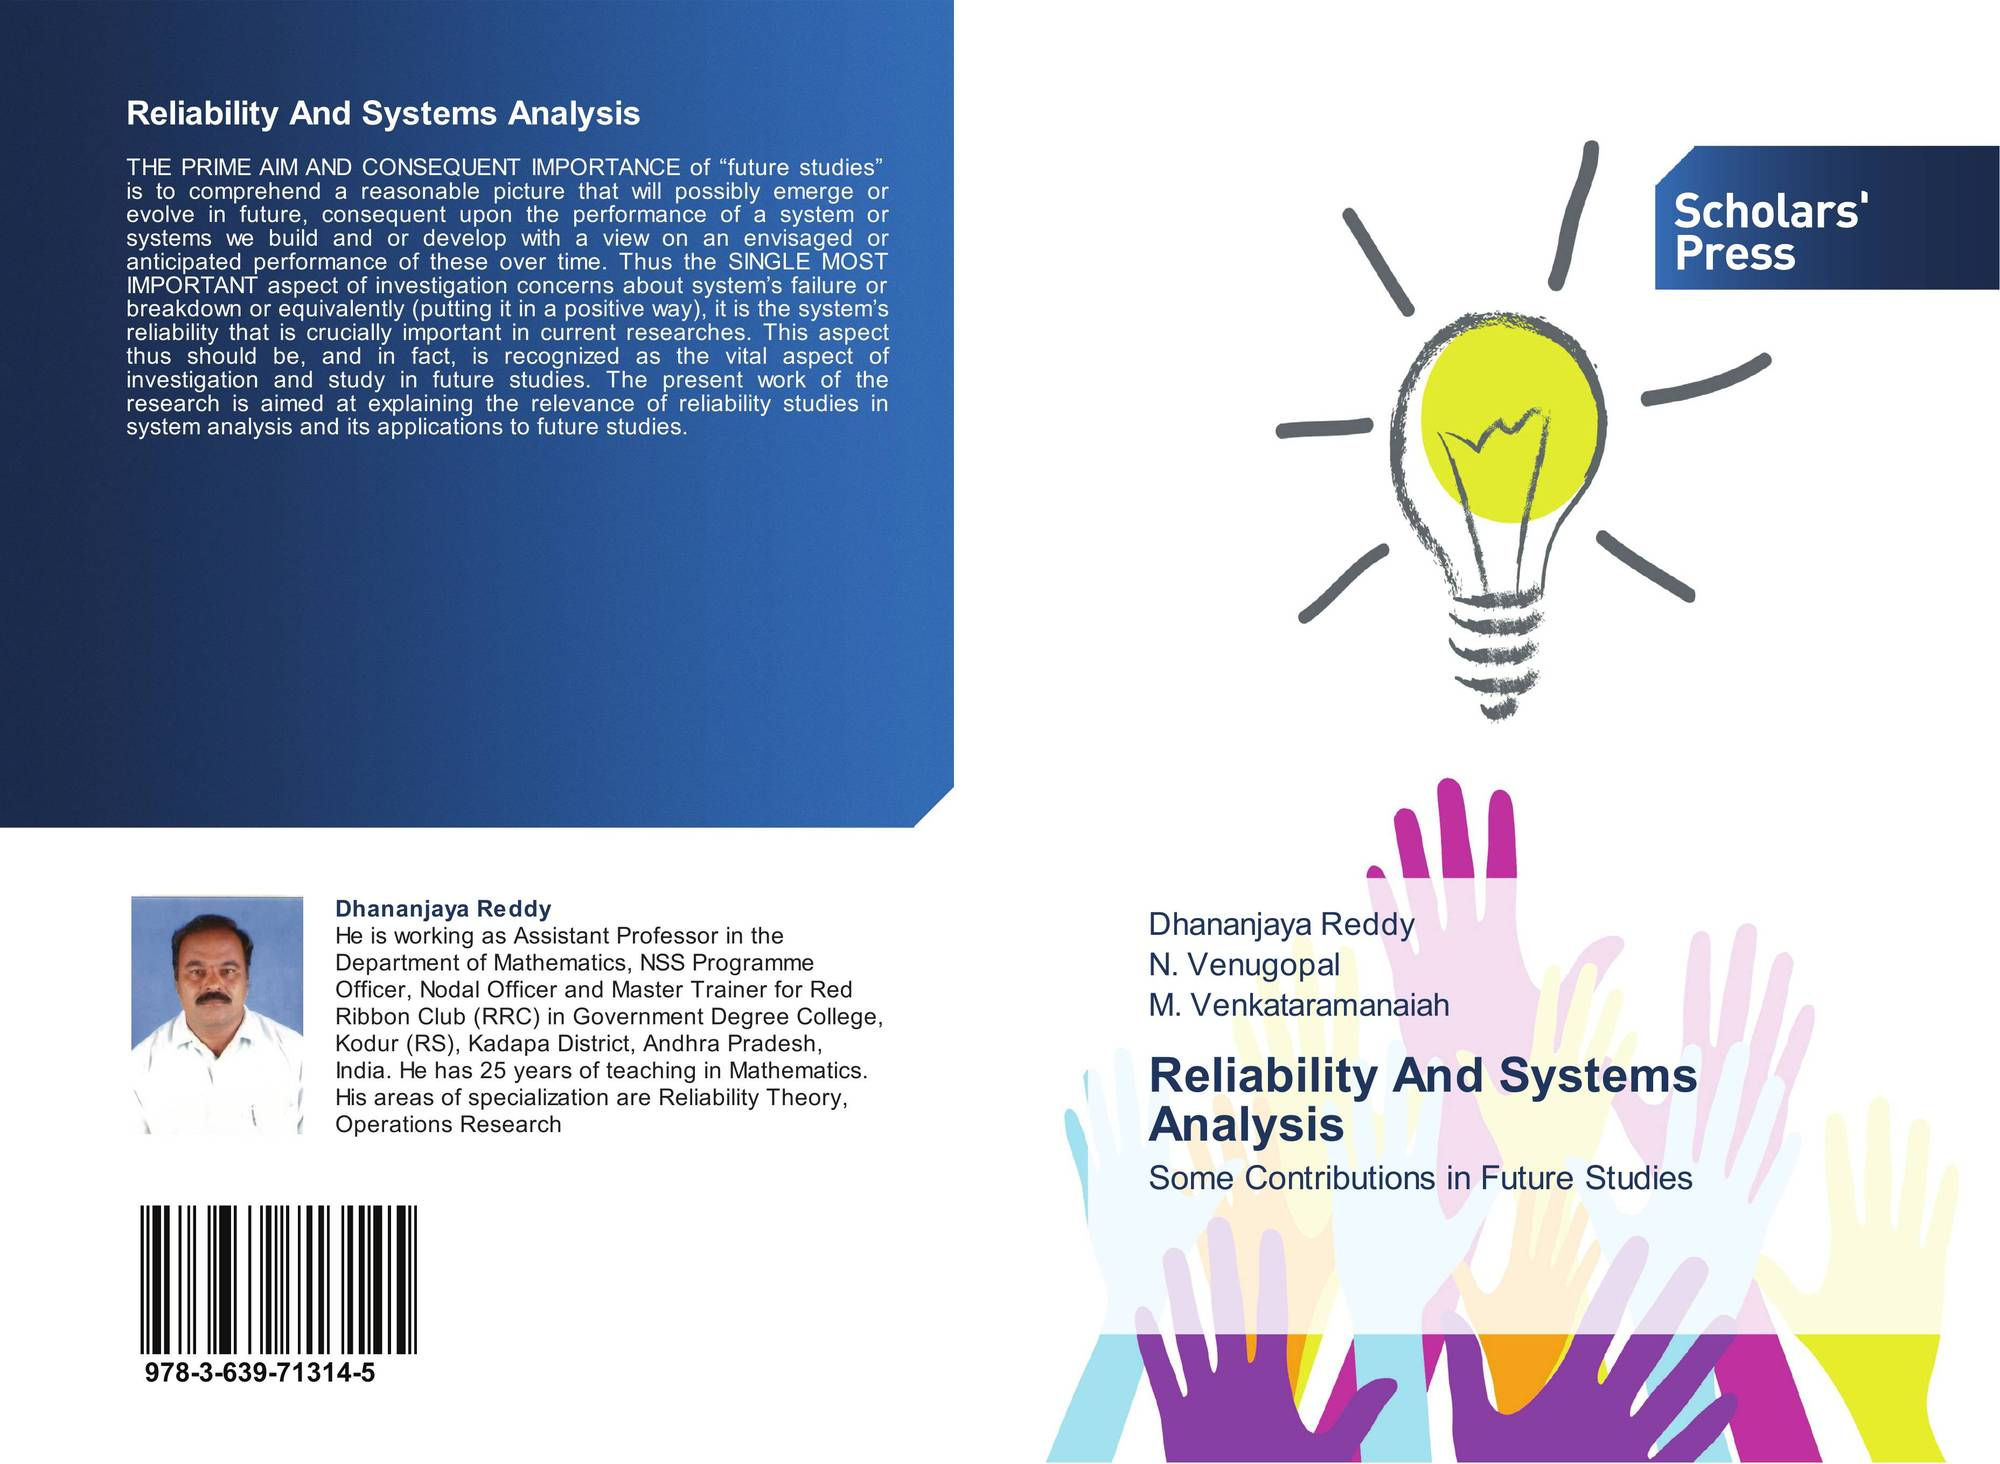 systems theory and its relevance to Systems theory is the interdisciplinary study of systems in general, with the goal of elucidating principles that can be applied to all types of systems at all nesting levels in all fields of research.